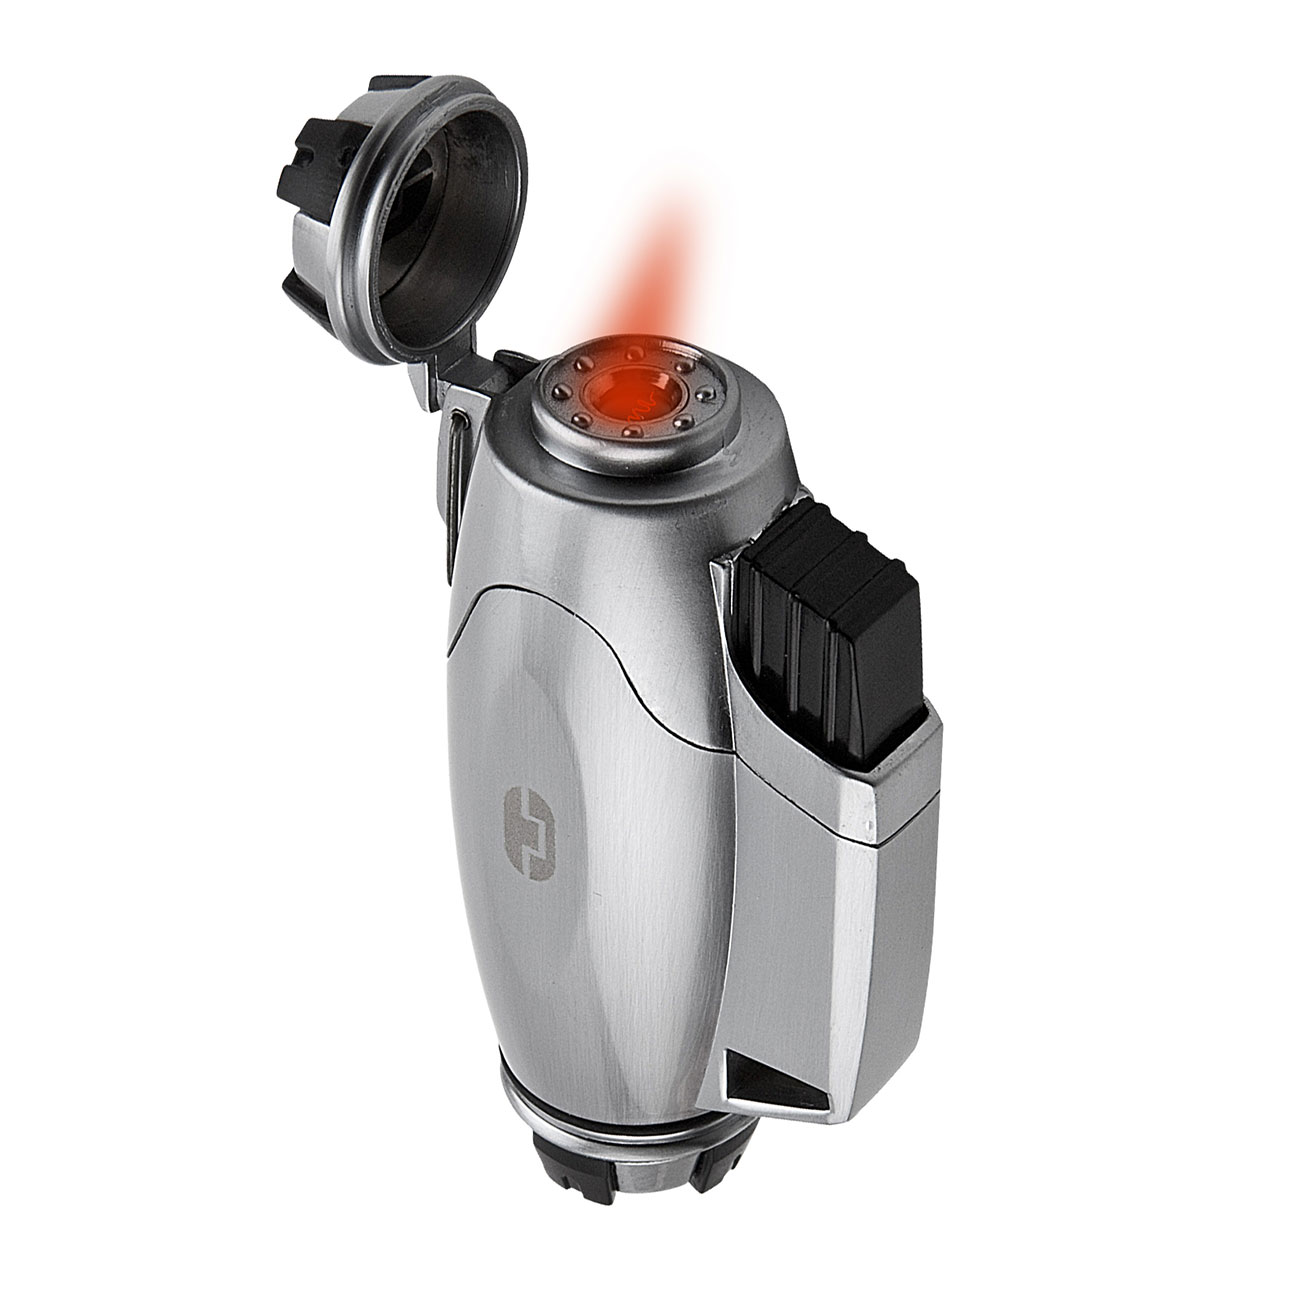 True Utility Sturmfeuerzeug TU407 TurboJet Lighter silber 0